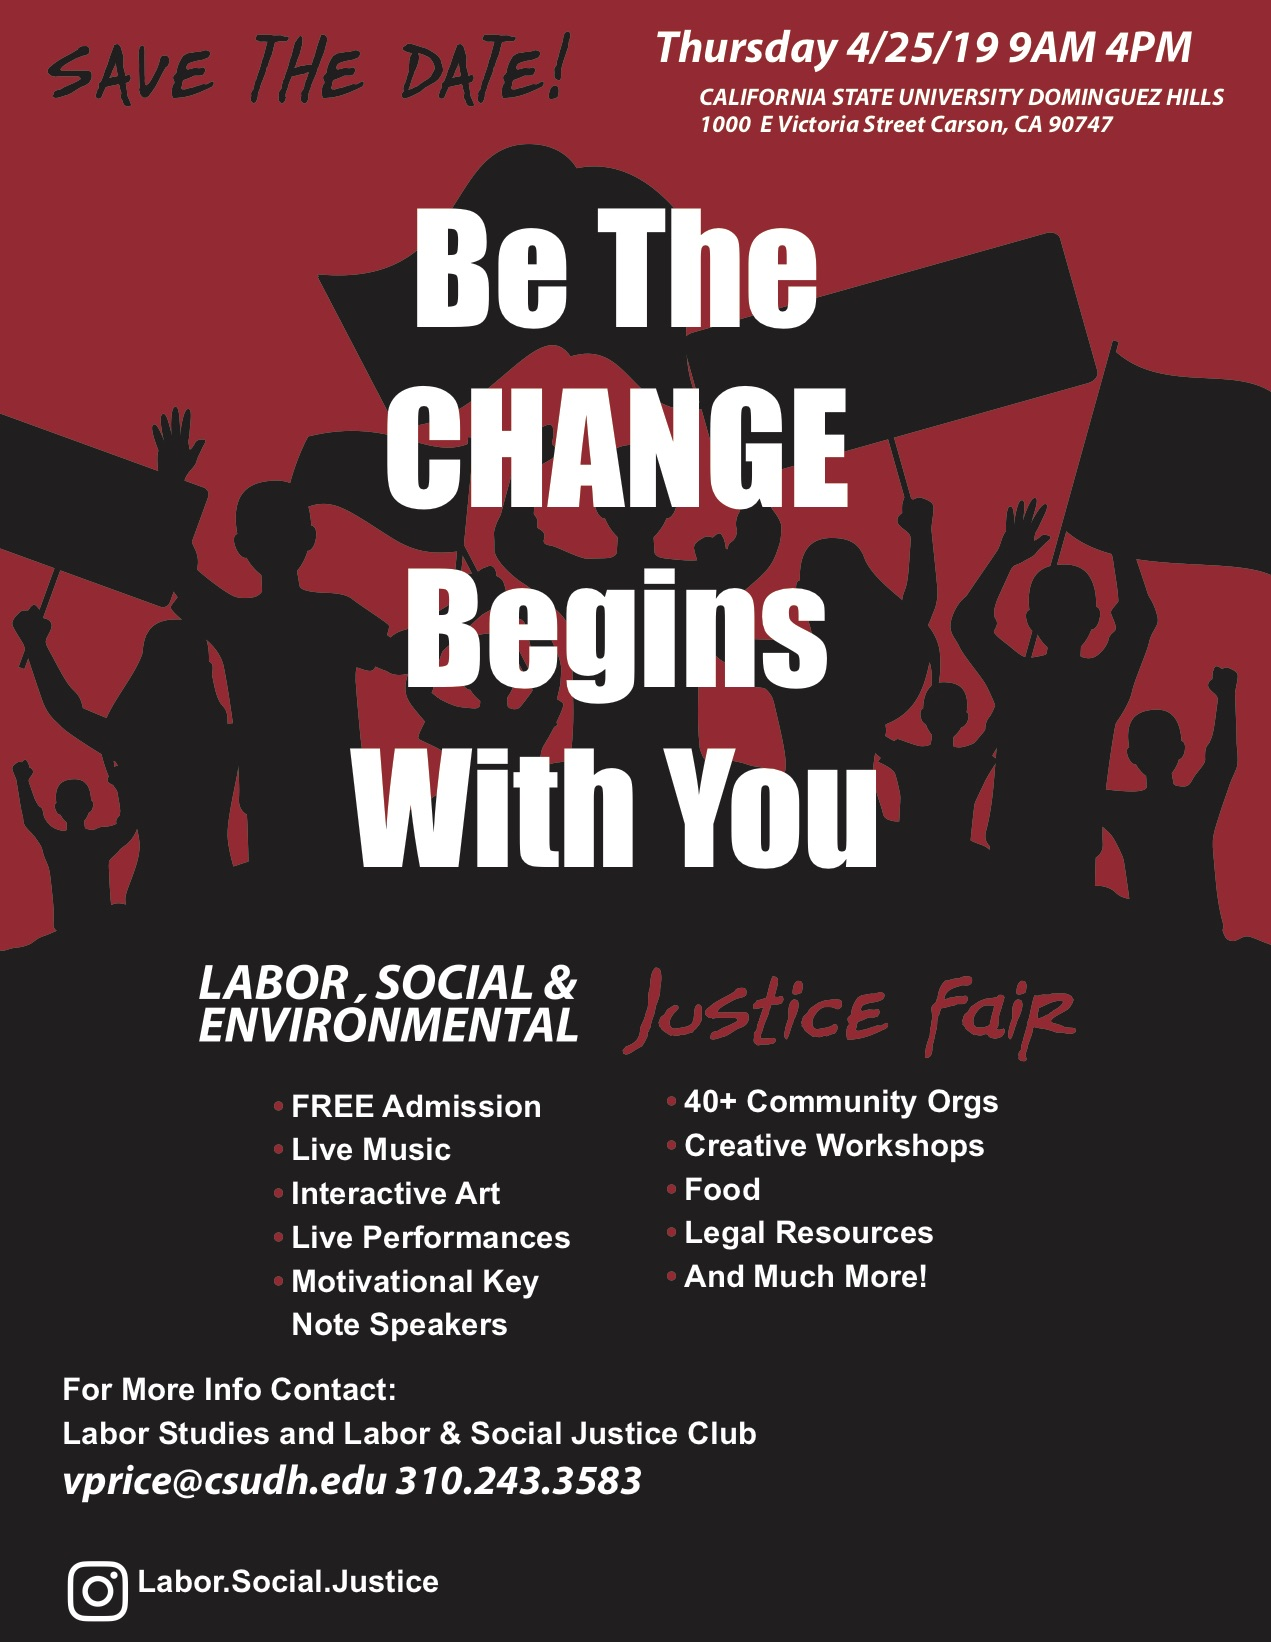 Labor Studies CSUDH Labor Fair 2019